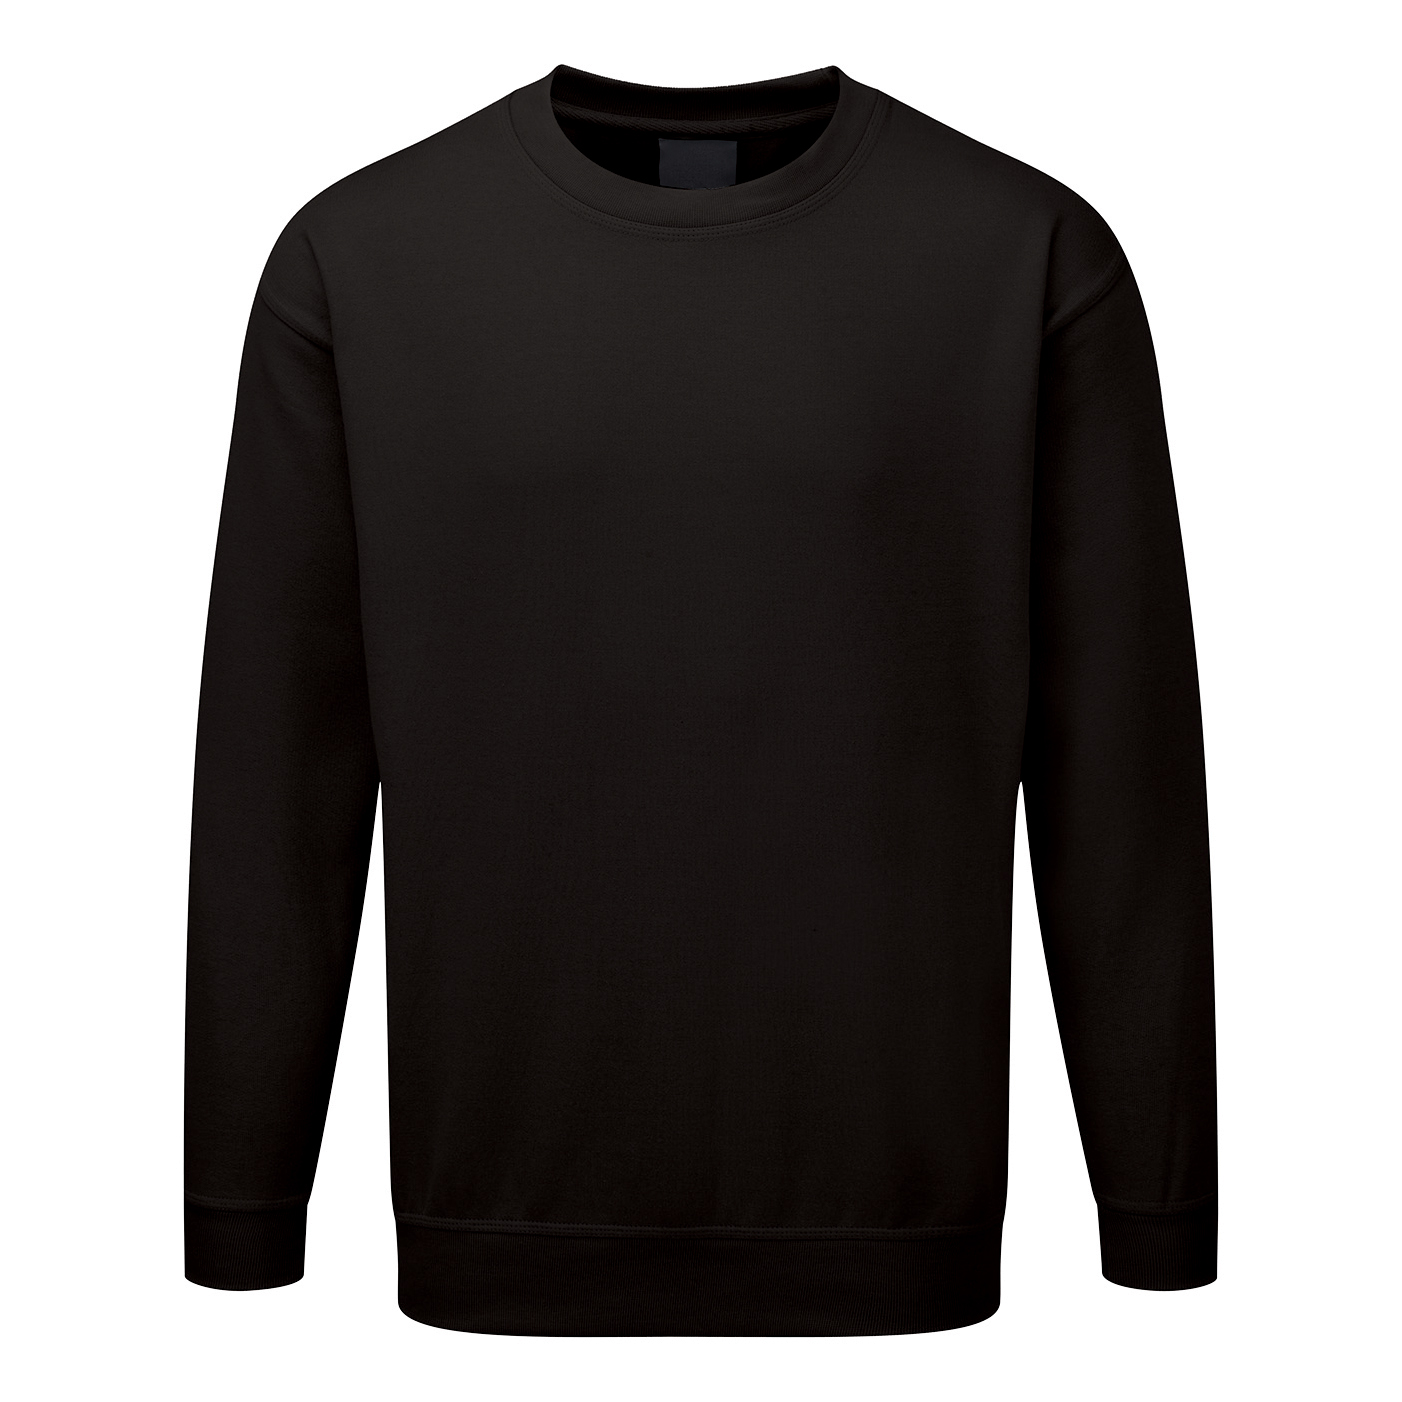 Click Workwear Sweatshirt Polycotton 300gsm Medium Black Ref CLPCSBLM *1-3 Days Lead Time*